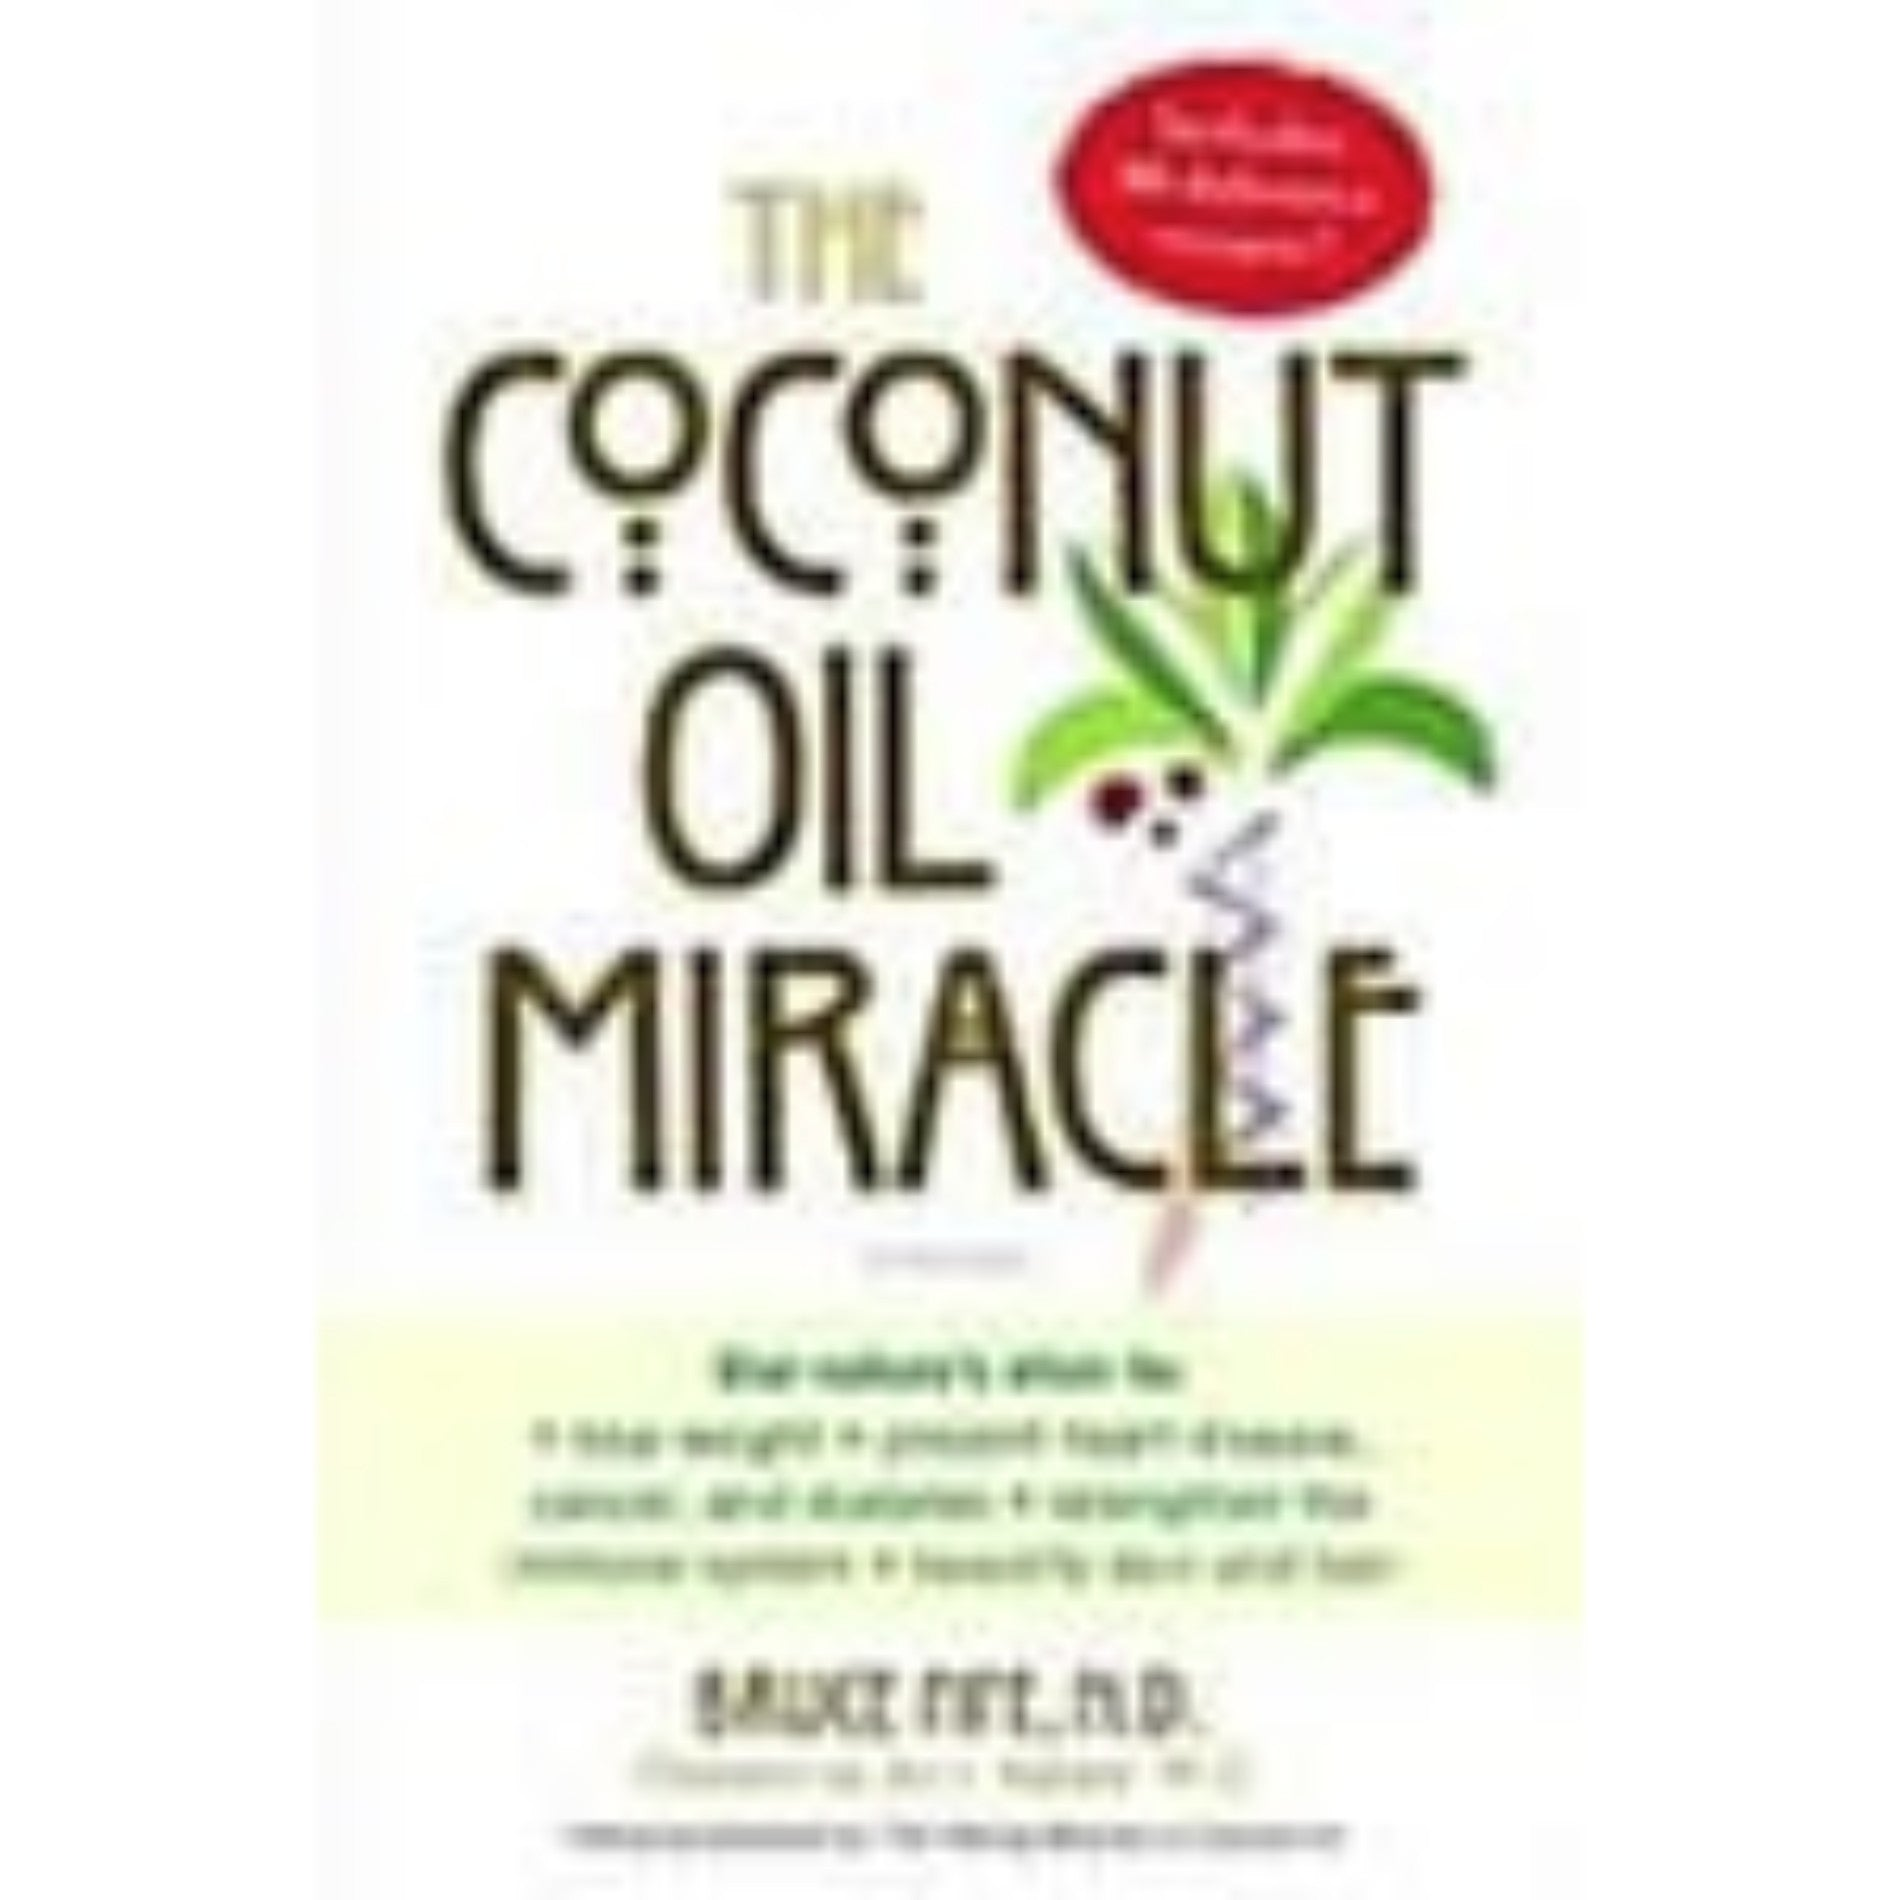 The Coconut Miracle -Dr. Bruce Fife - Book Cover